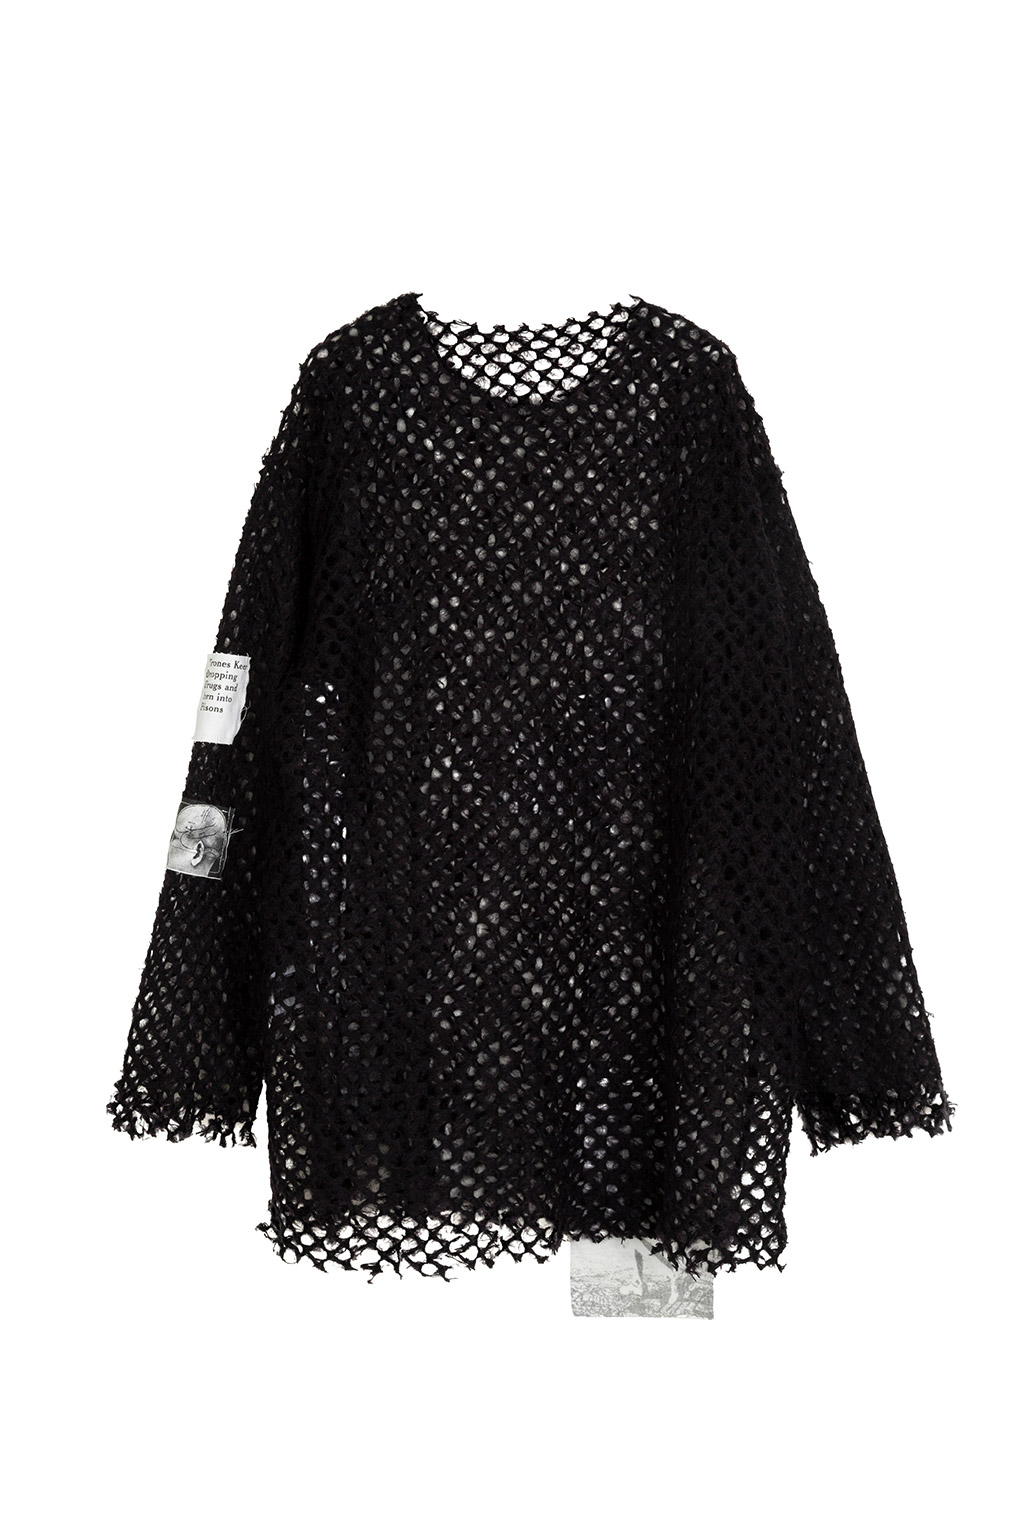 patch net knit - black